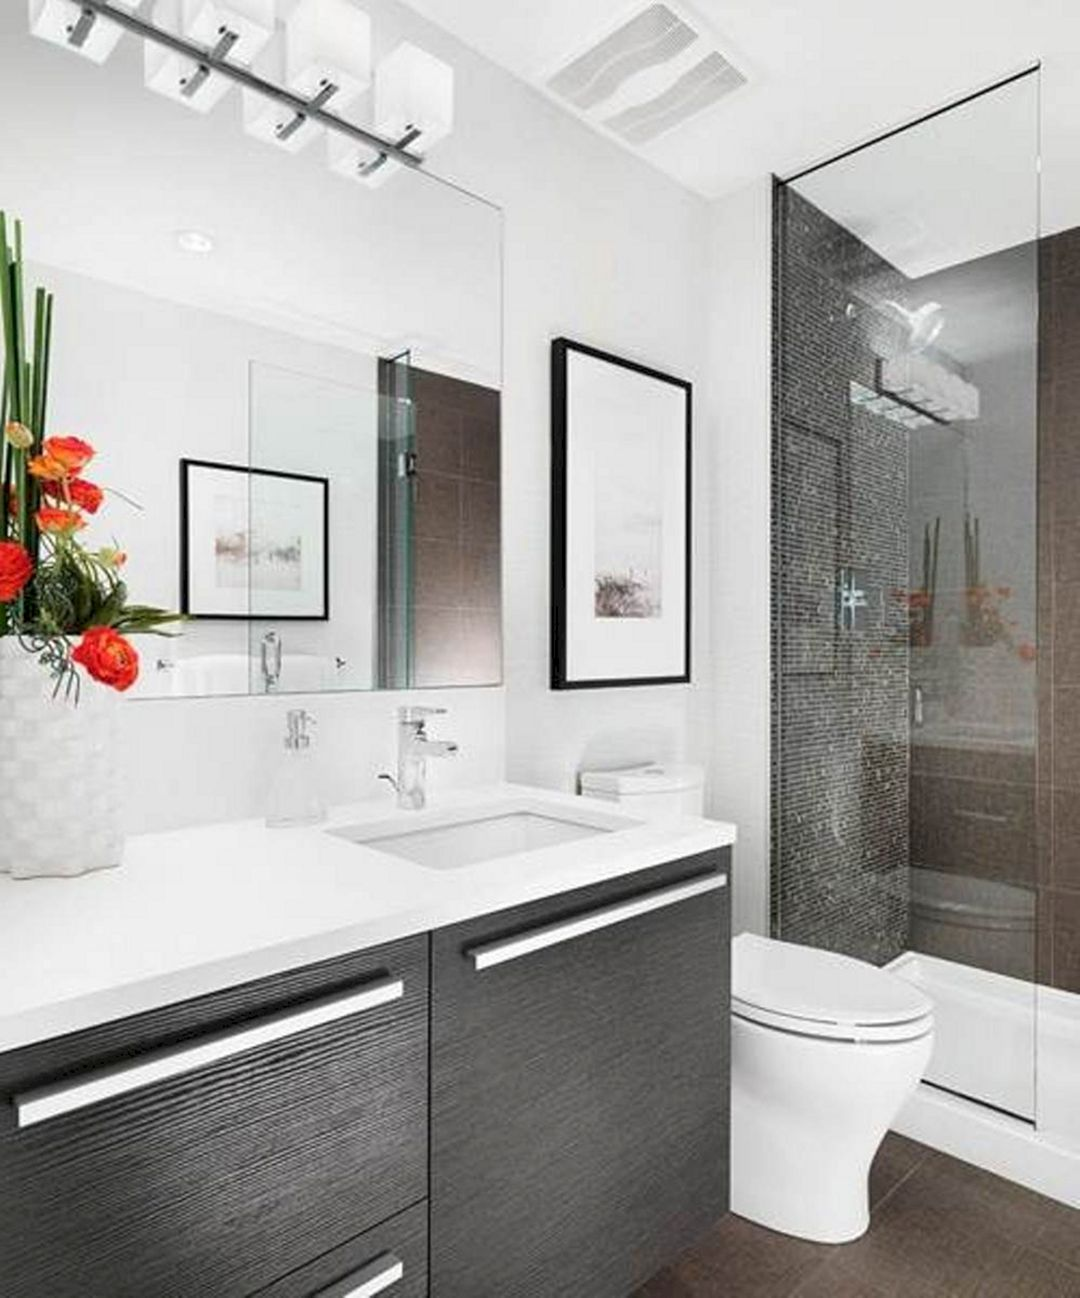 24 Modern Small Bathroom Design Ideas On A Budget With Images